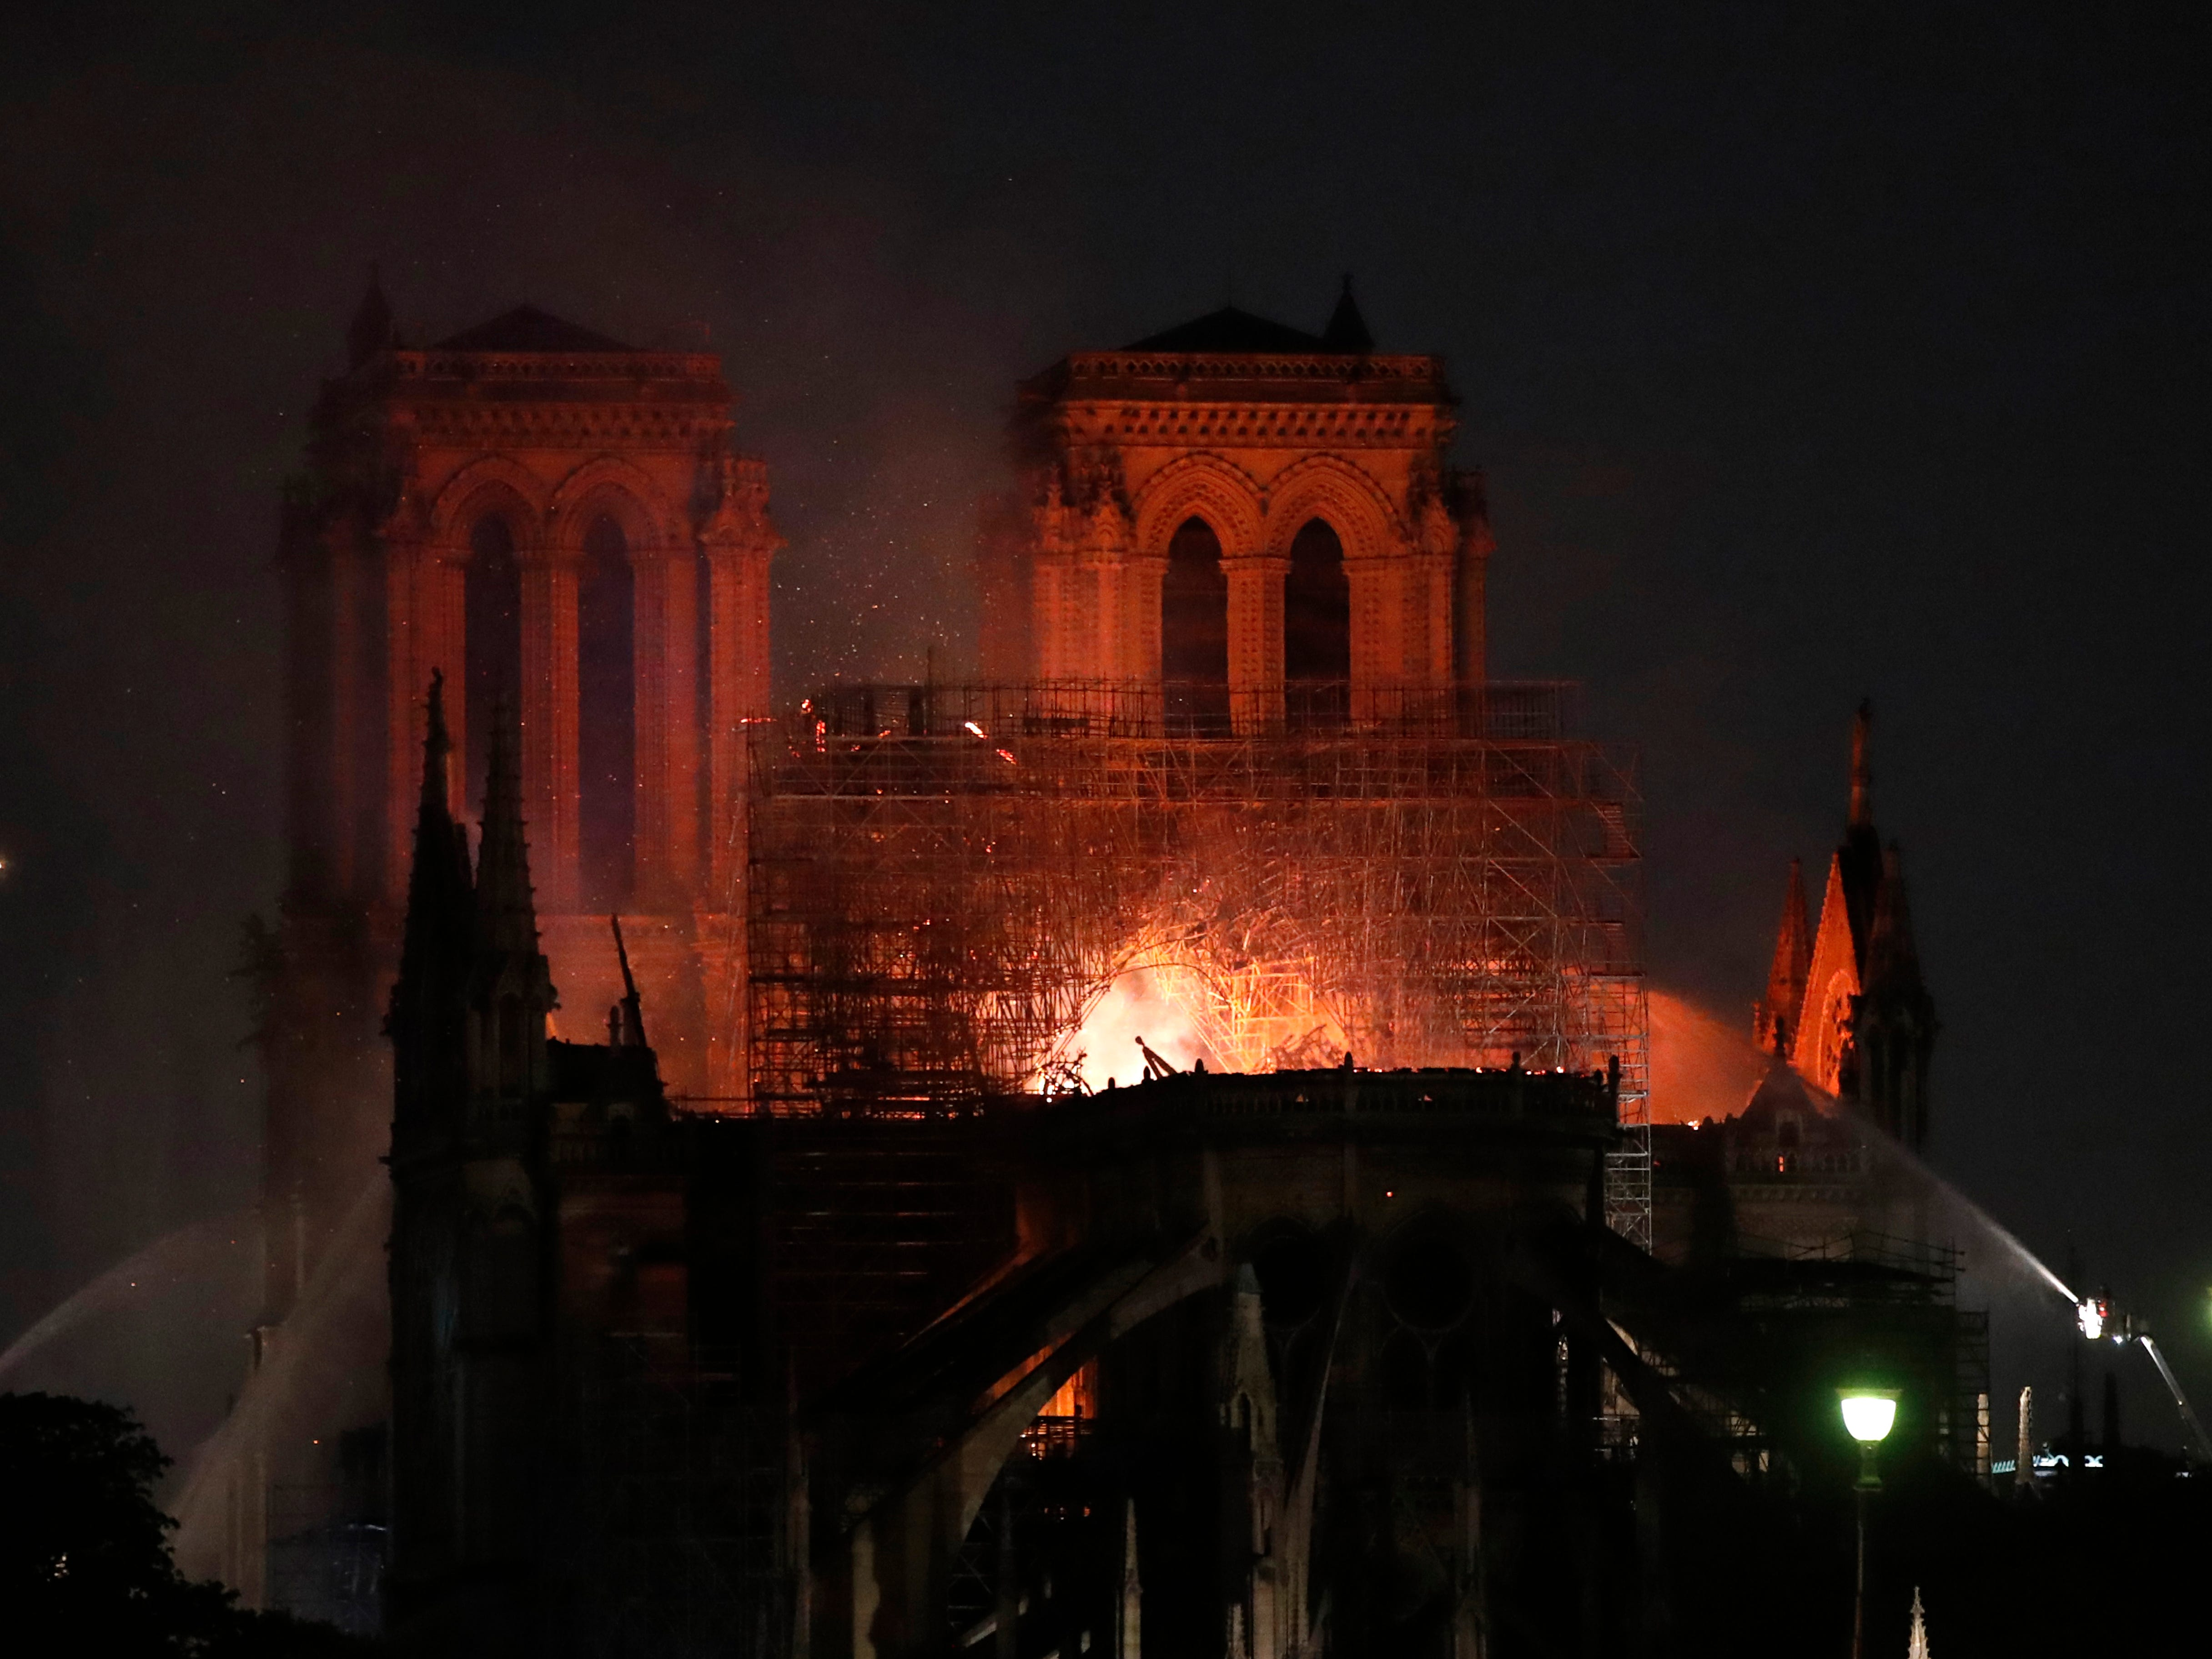 Fire fighters try to extinguish the fire as Notre Dame cathedral burns.